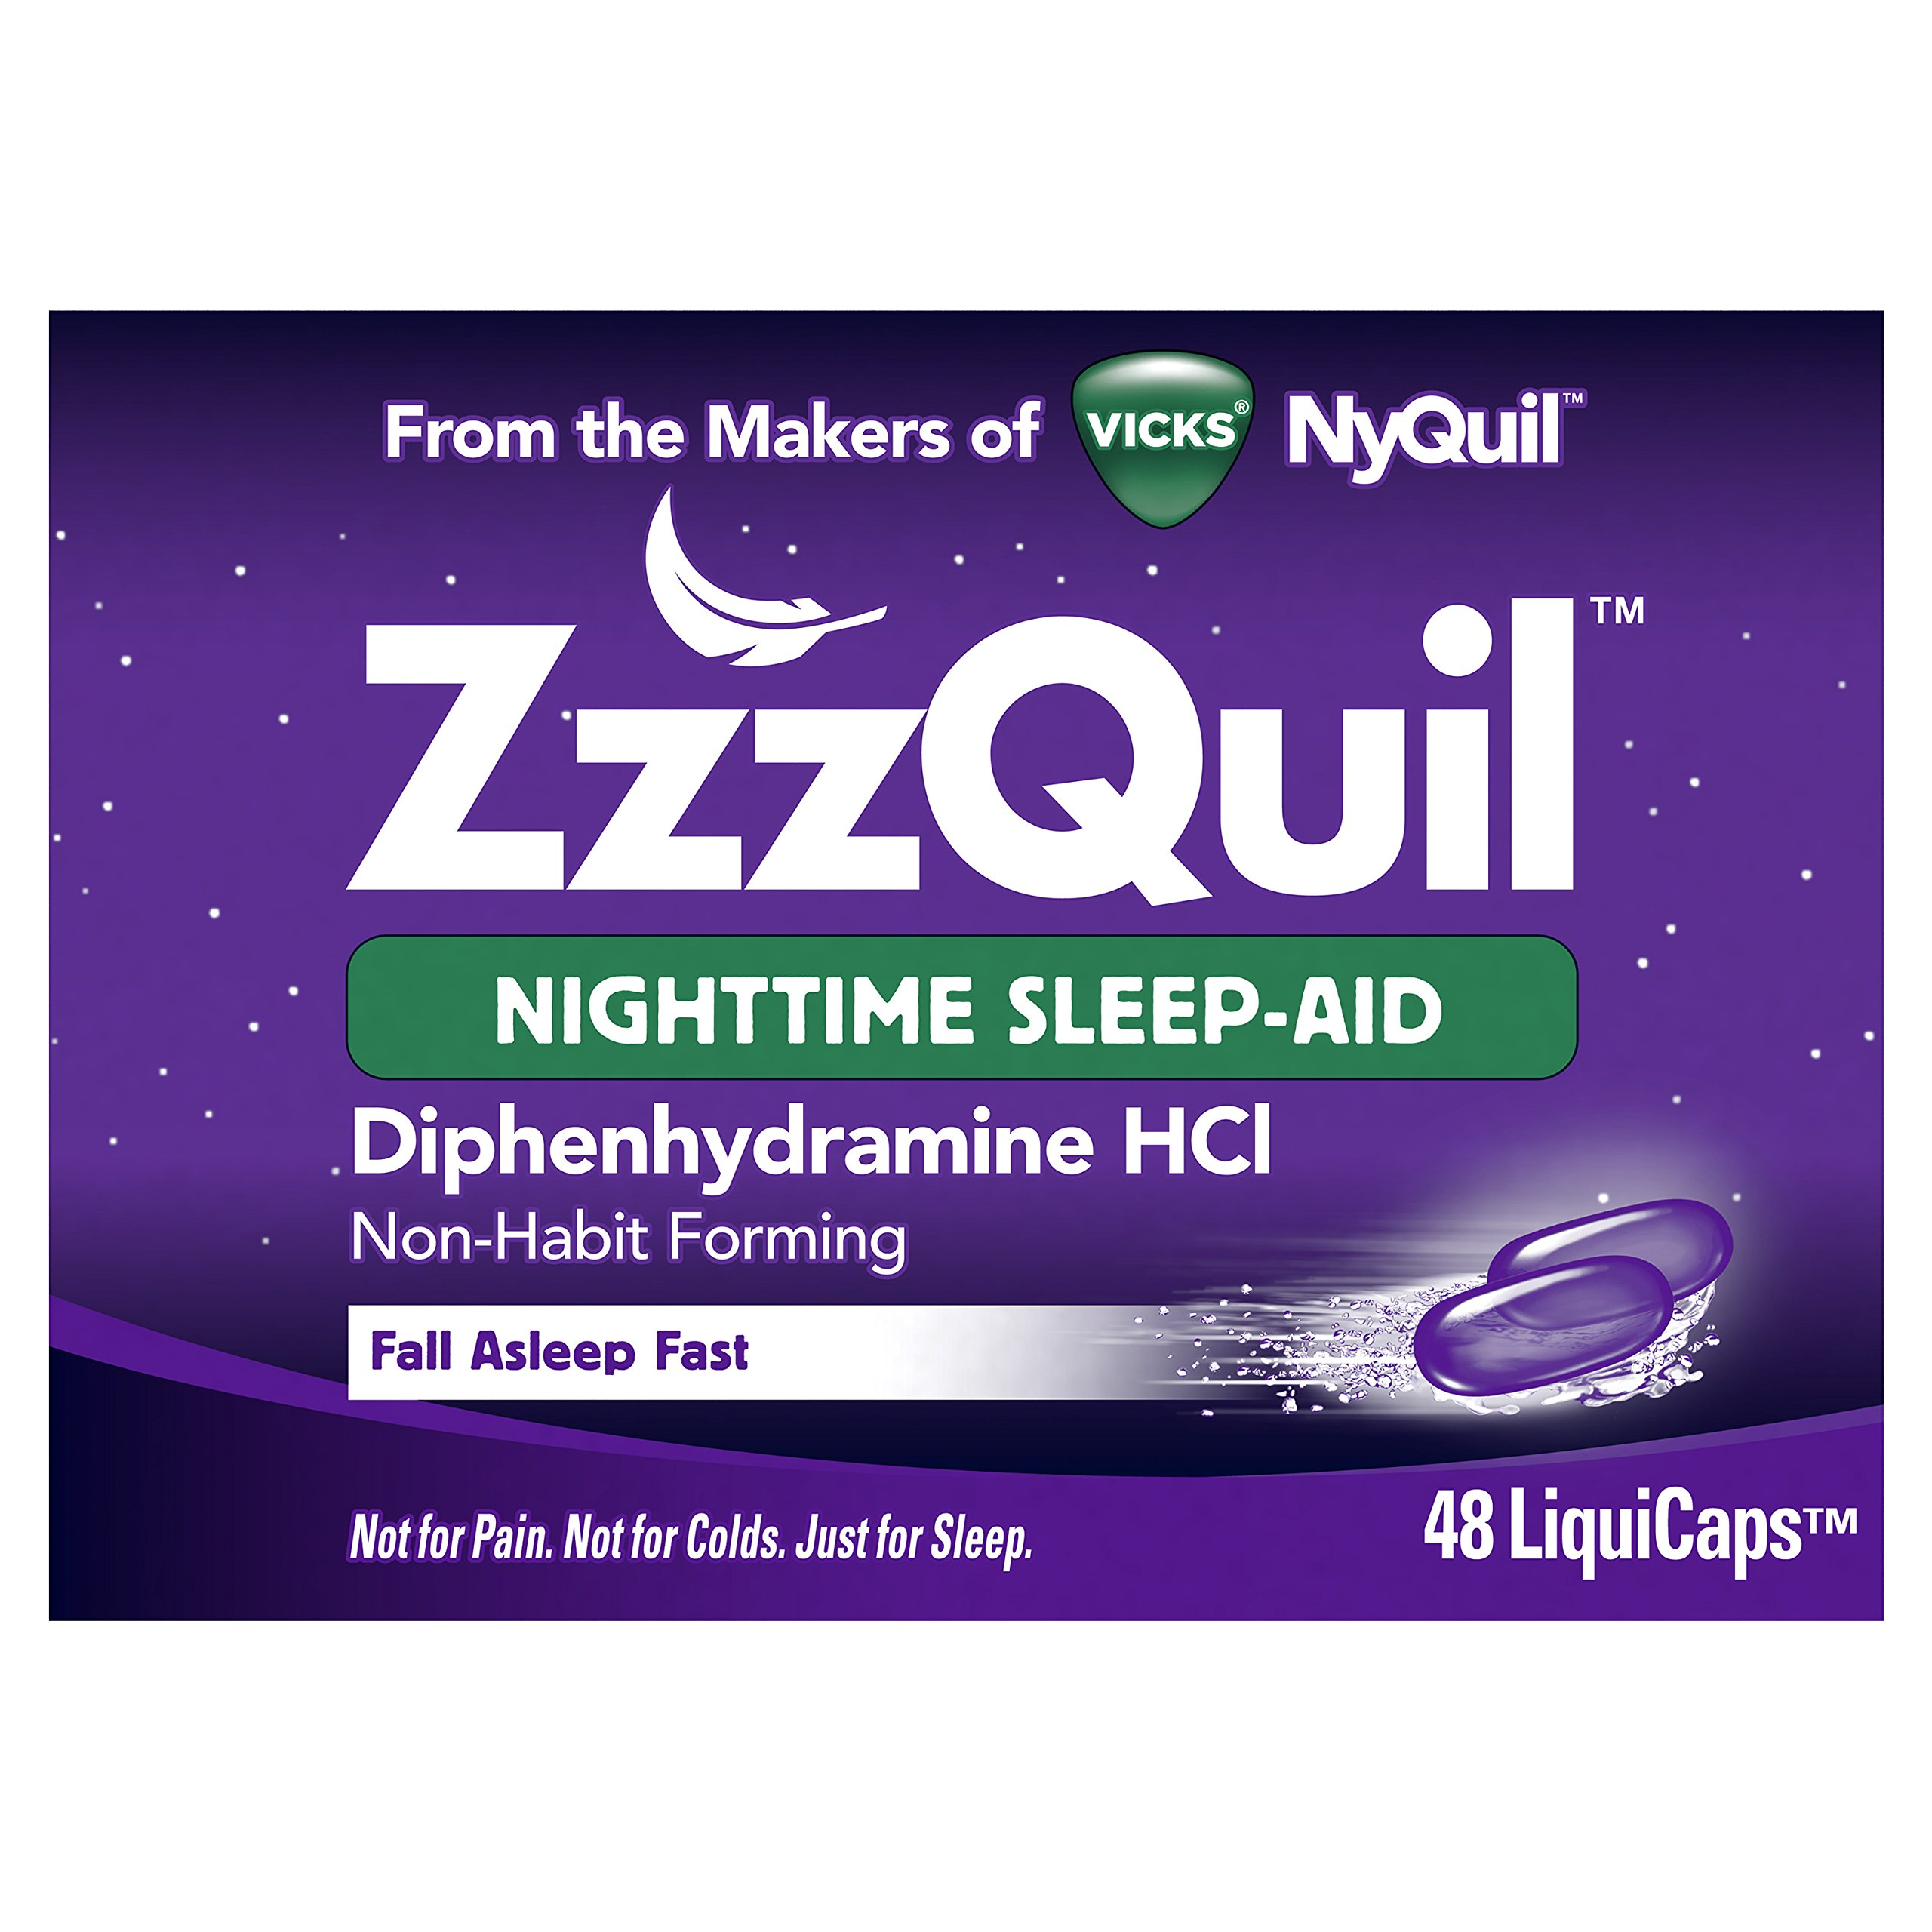 ZzzQuil Nighttime Sleep Aid, 48 LiquiCaps